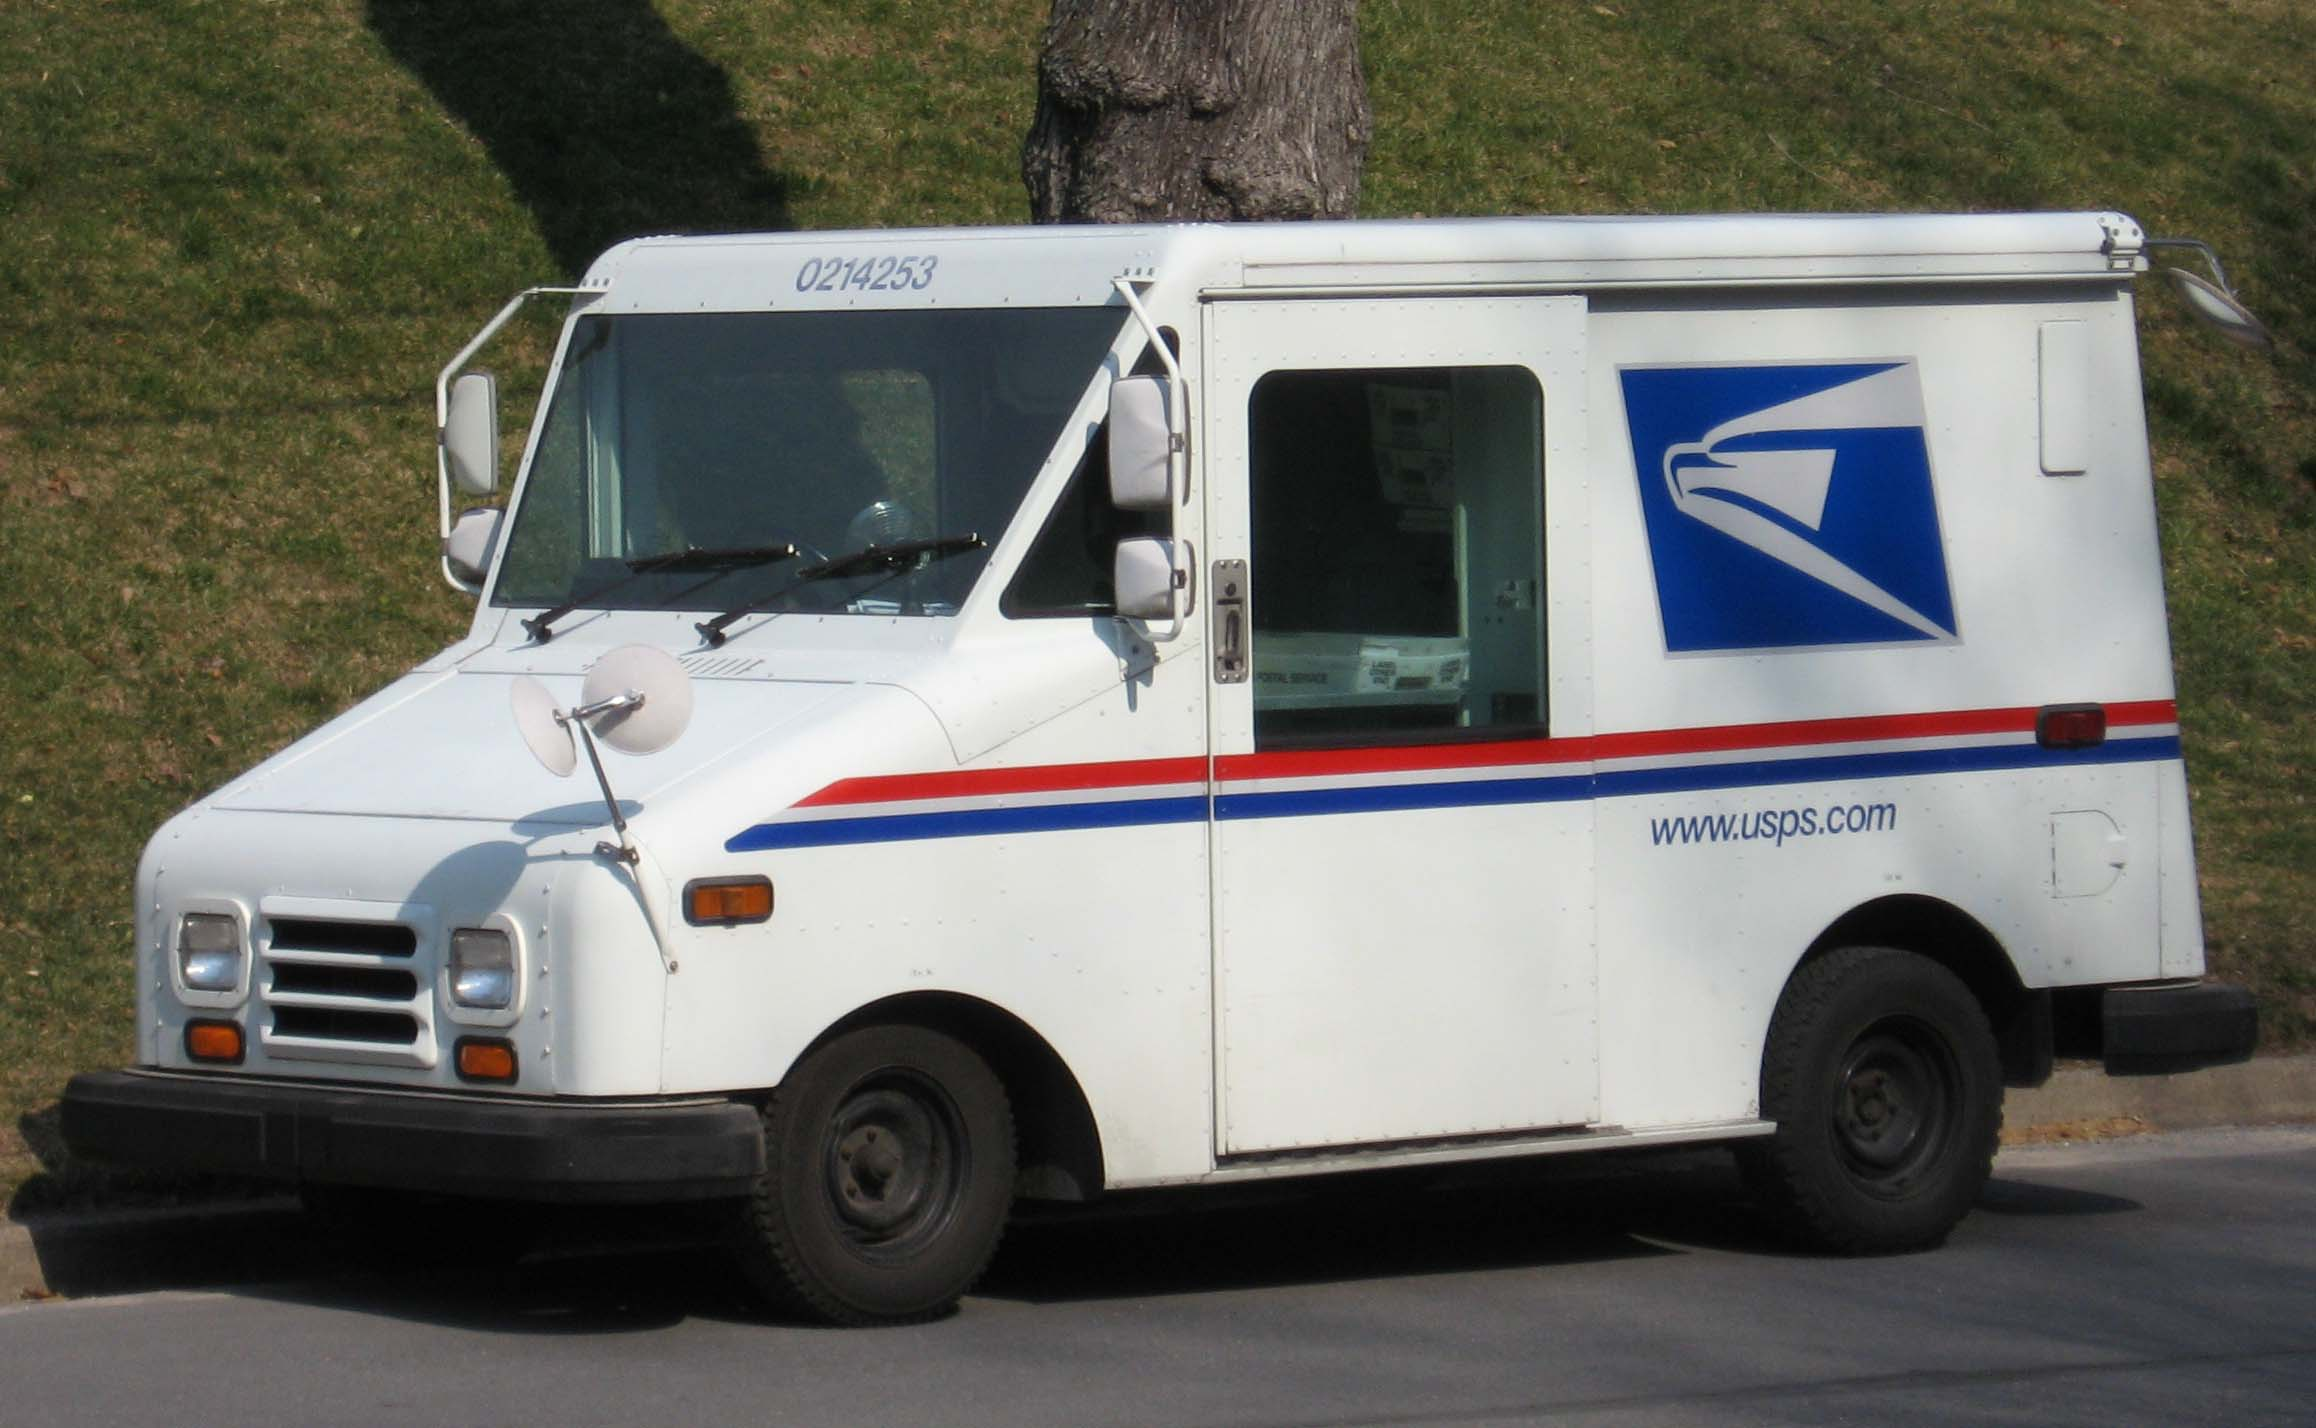 Mail Services Like USPS And FedEx To Continue Deliveries Despite Coronavirus